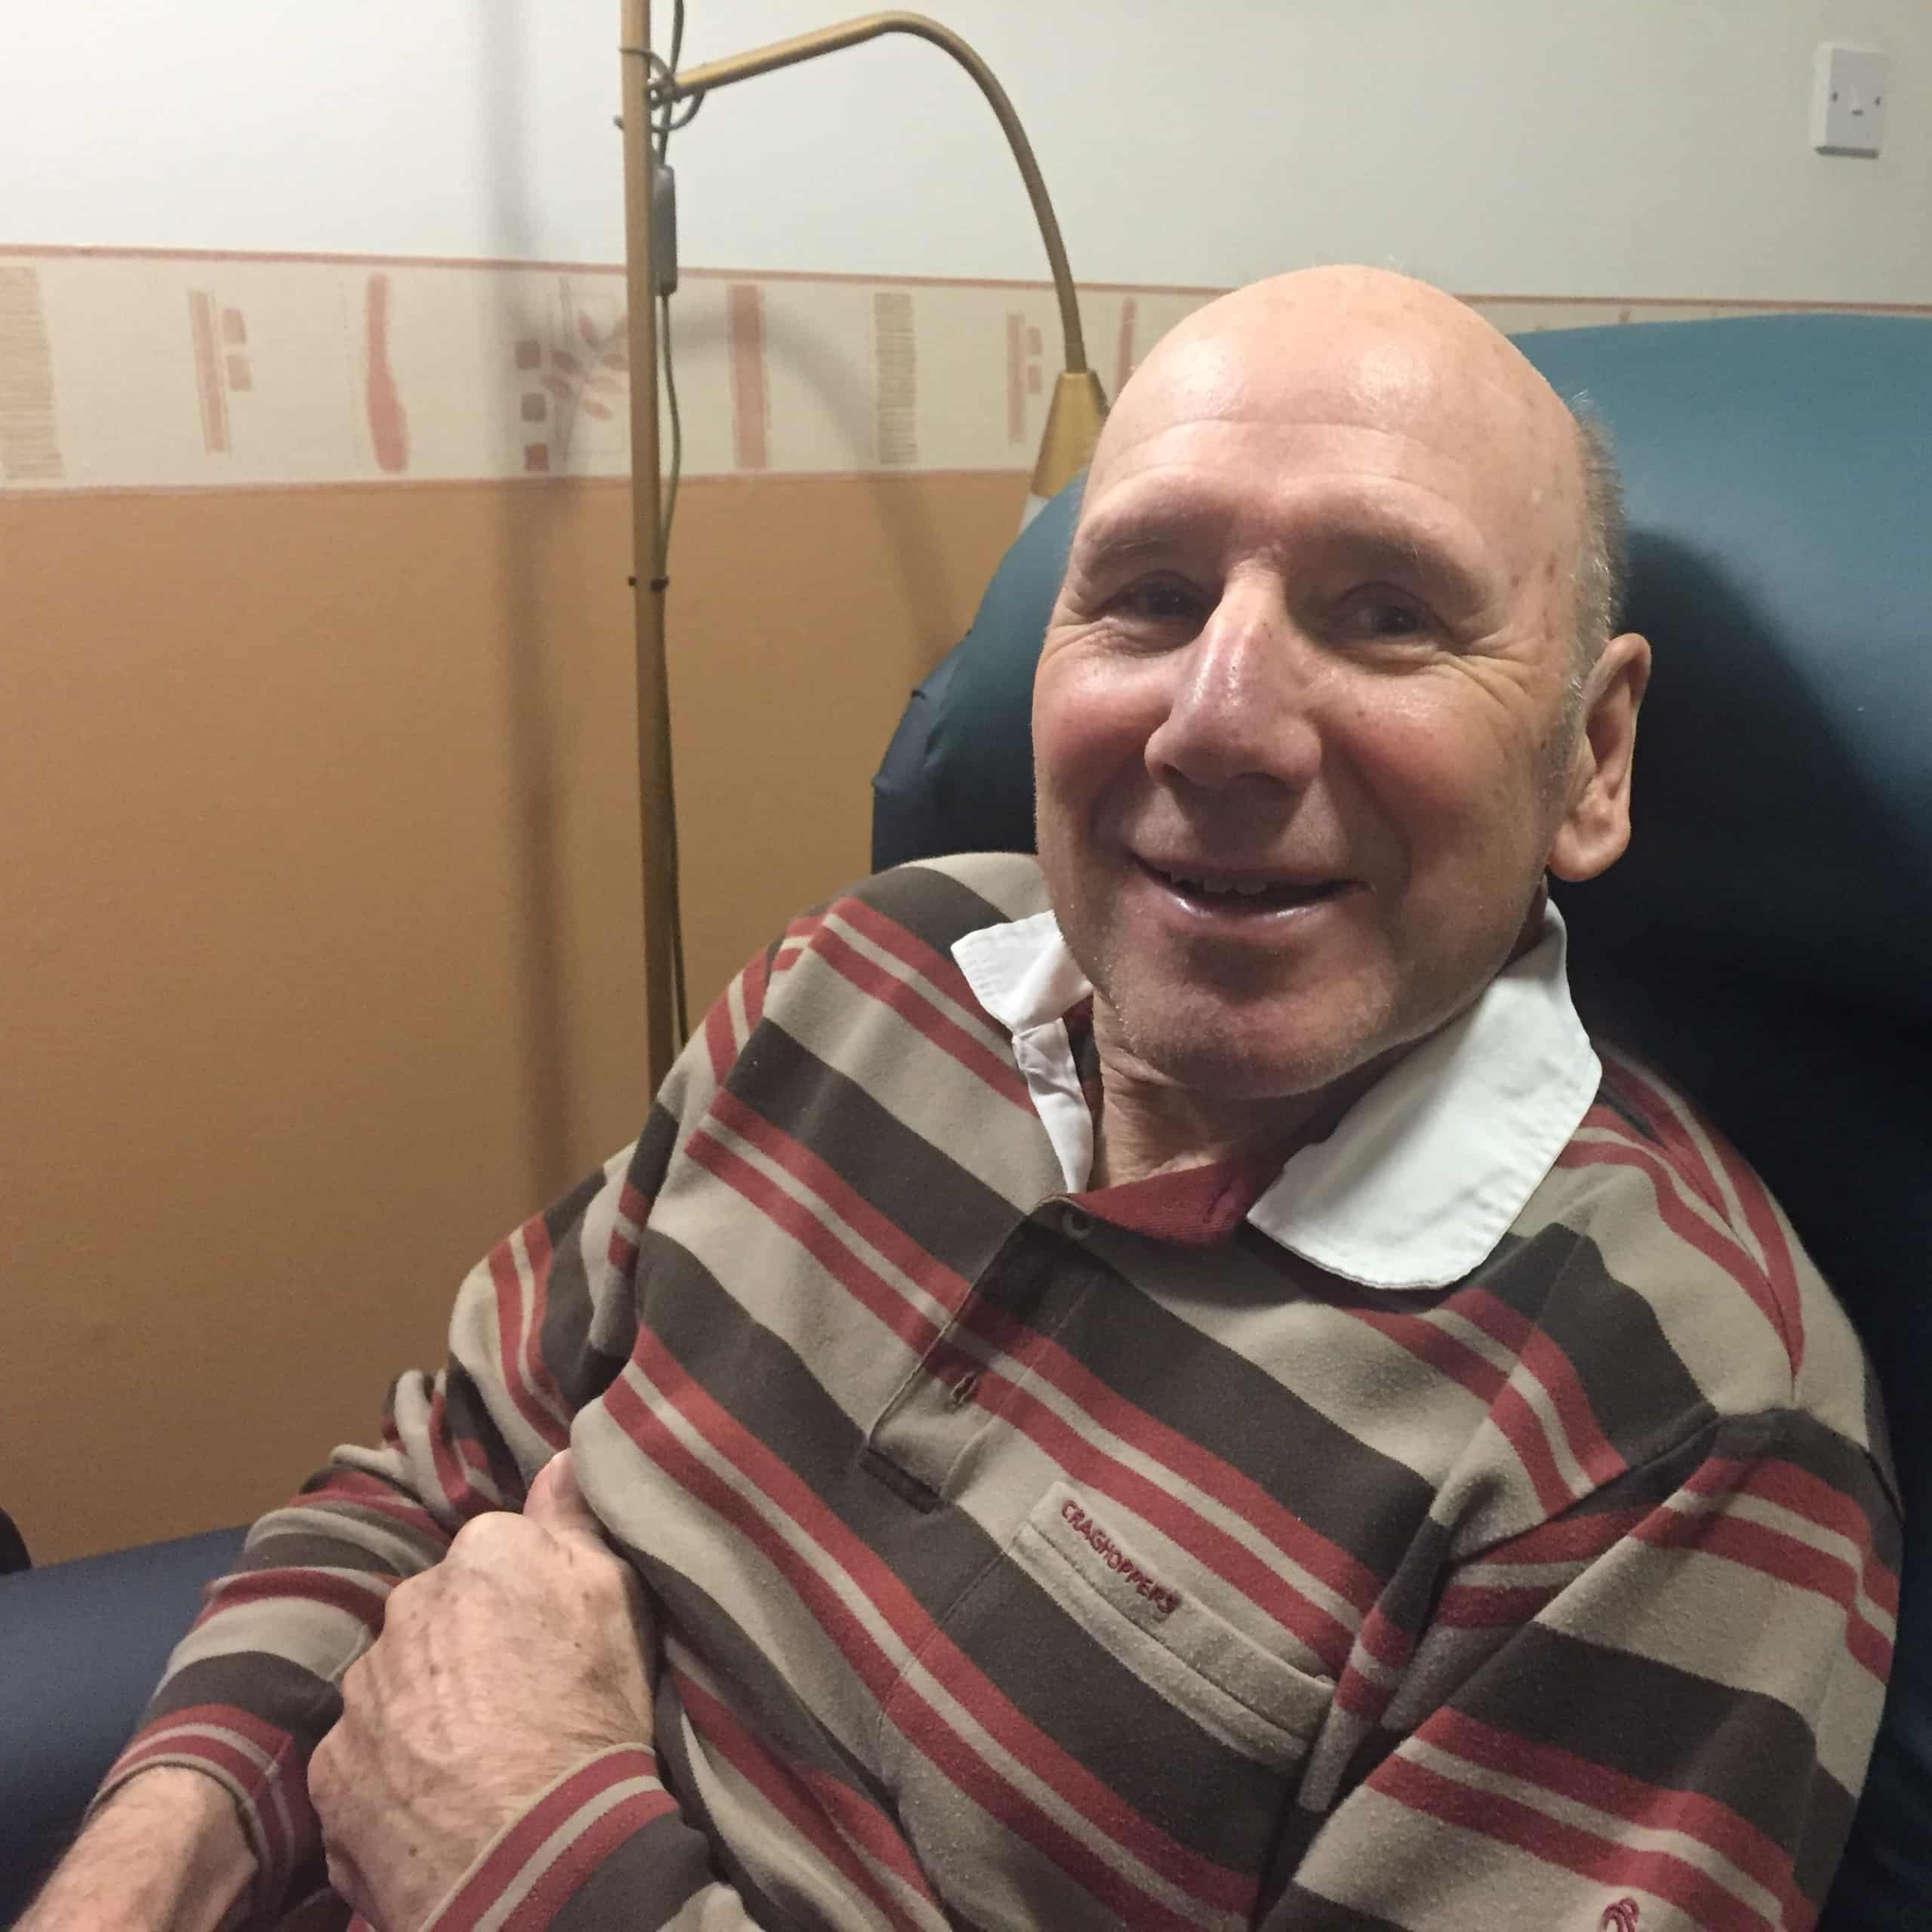 Muirton House Care Home resident Robert Clark talks about receiving his first dose of the Covid-19 vaccine.